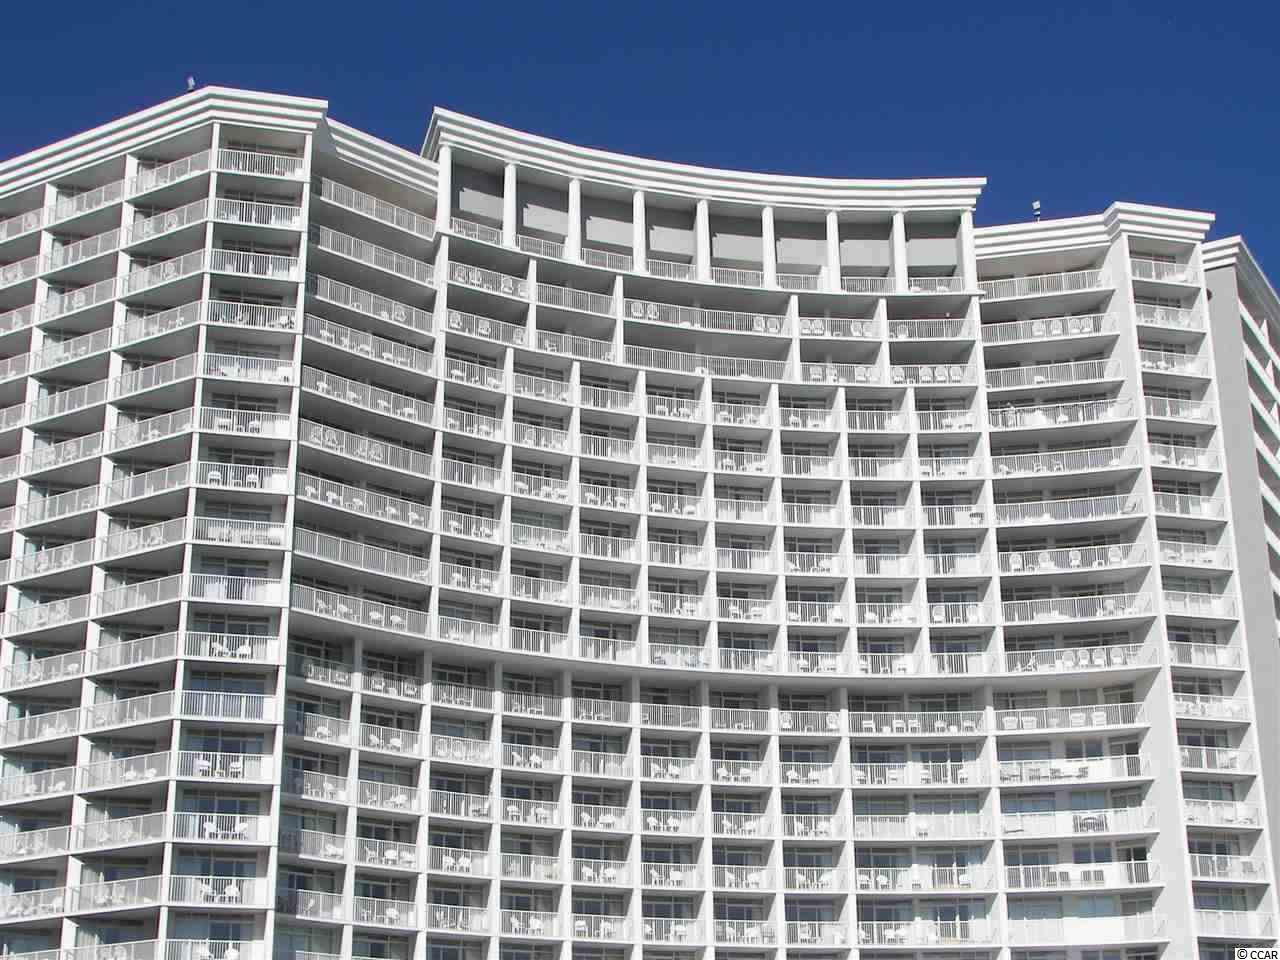 Ocean Front Condo in Myrtle Beach South Carolina